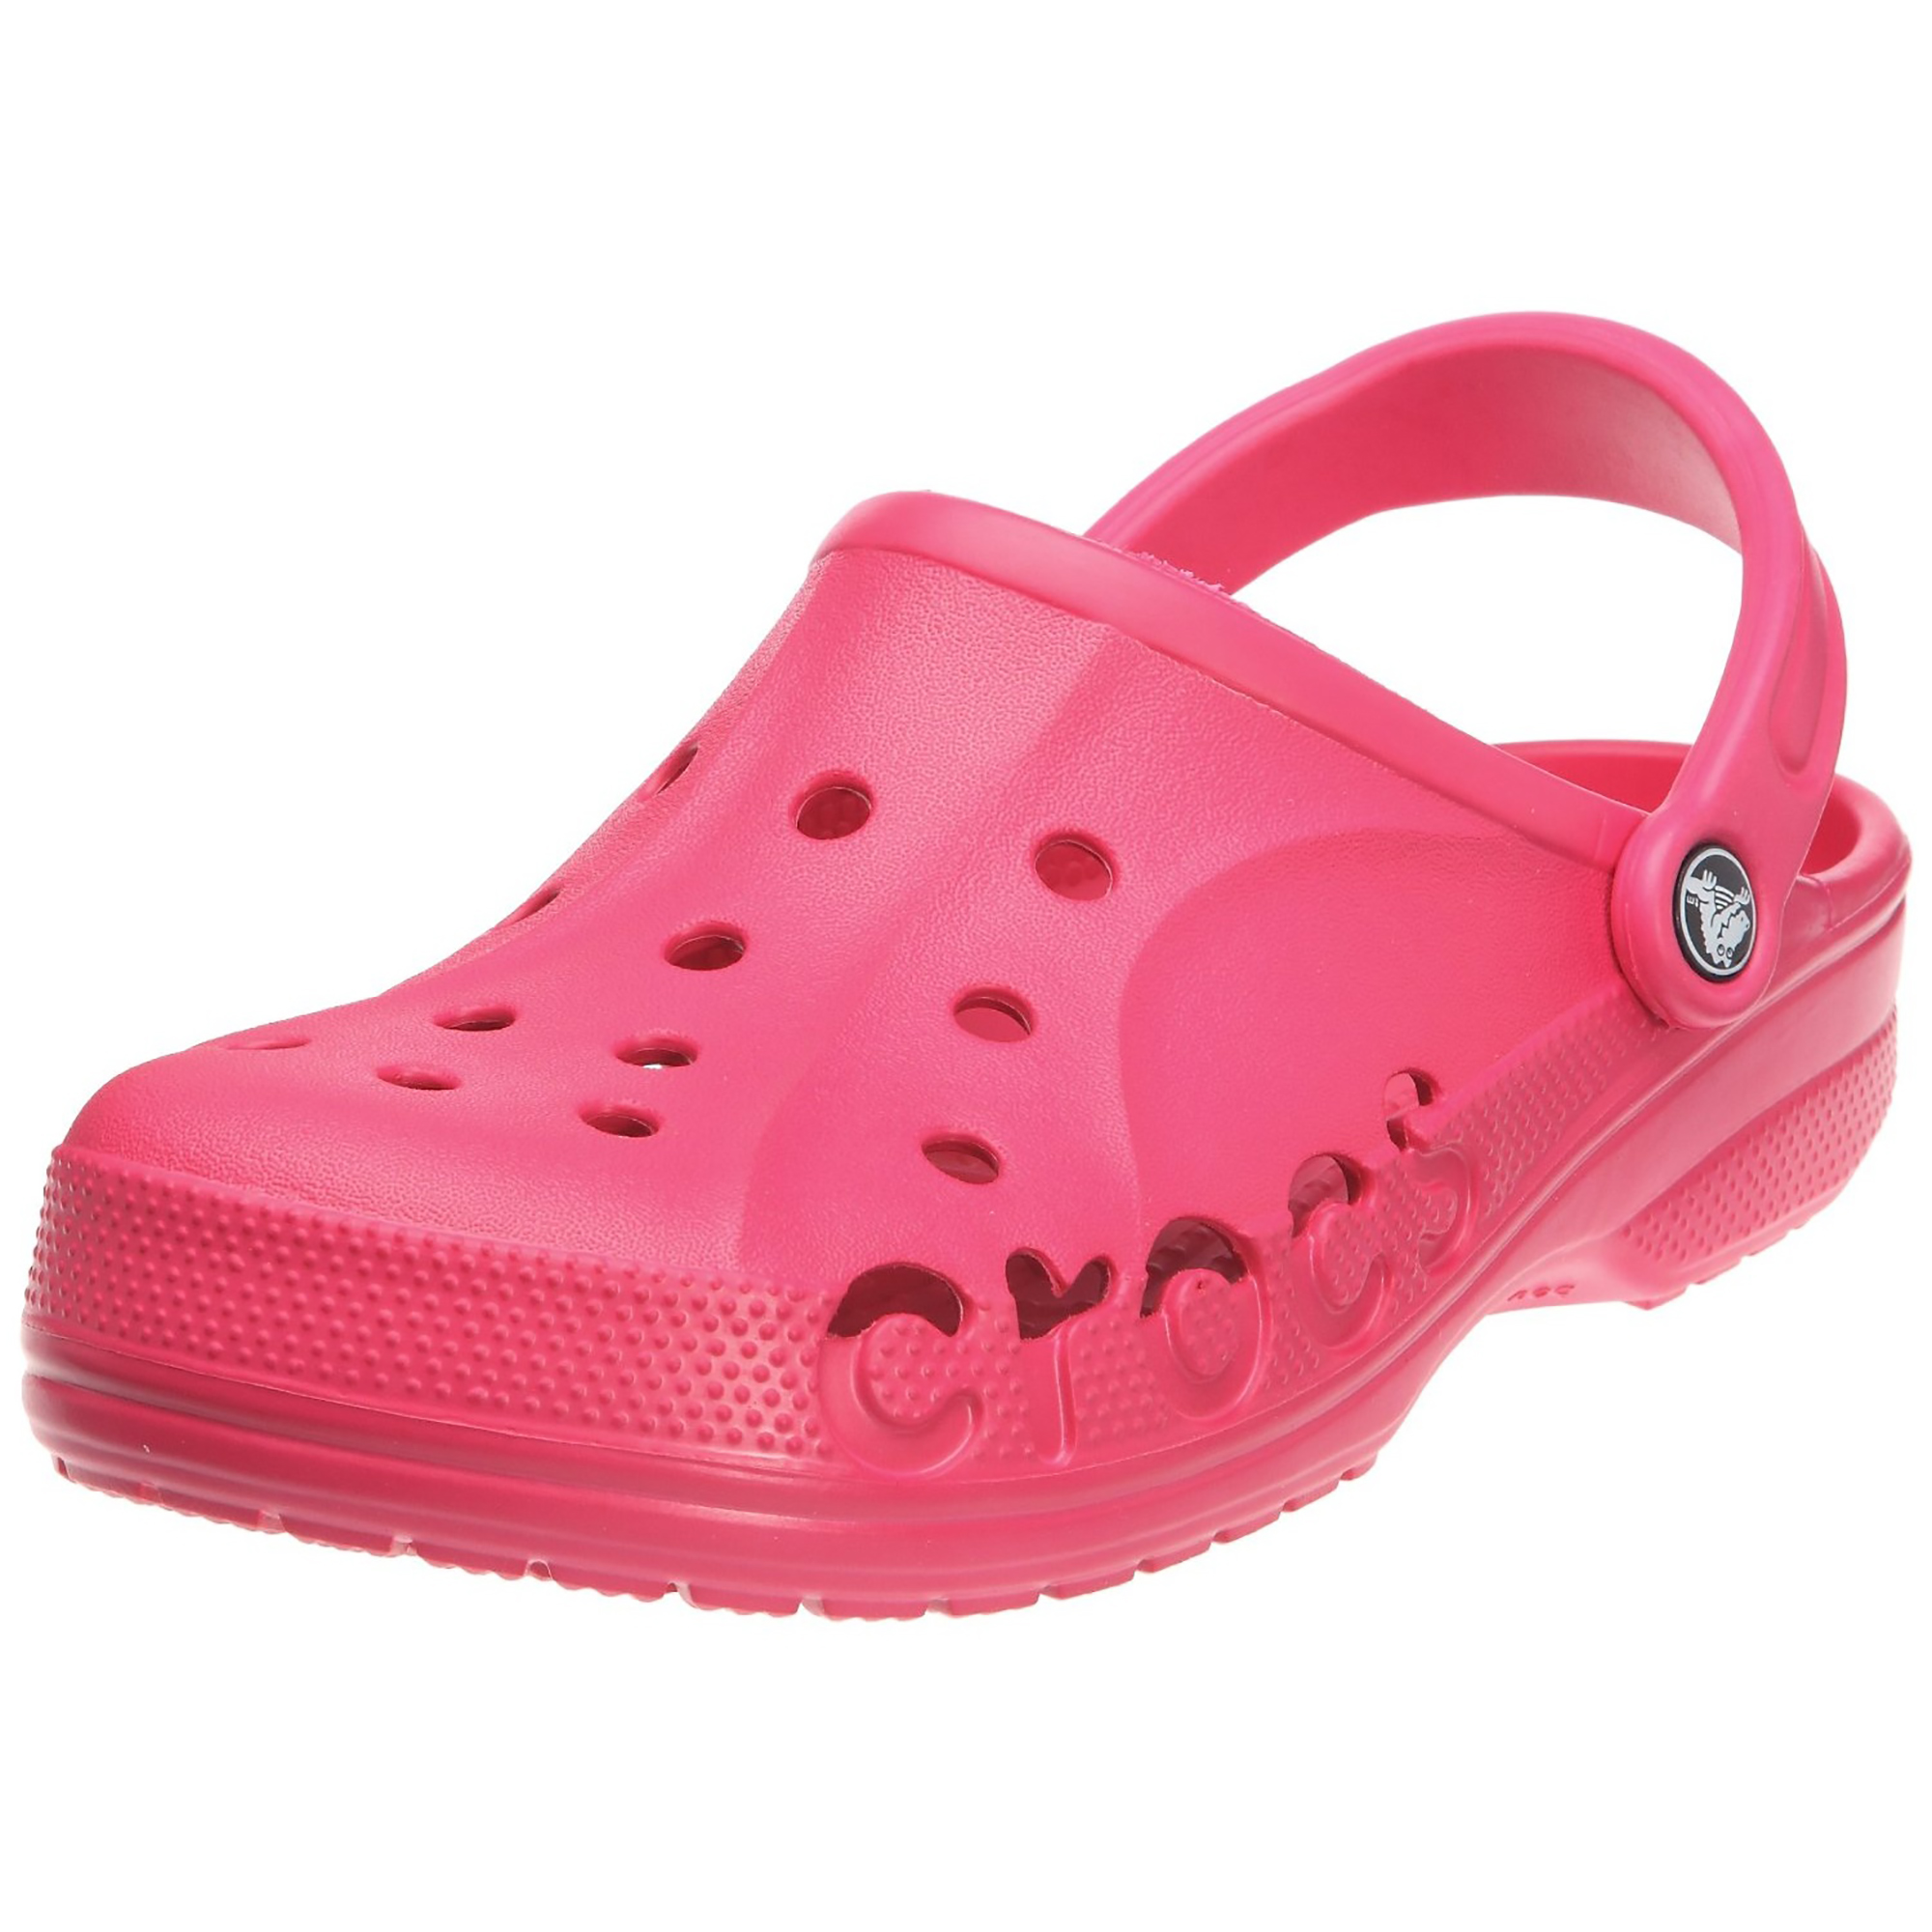 Crocs shoes: kids love 'em and so do parents! Easy to slip on, easy to clean, and super comfy, it's no wonder that families everywhere turn to Crocs for their kids!